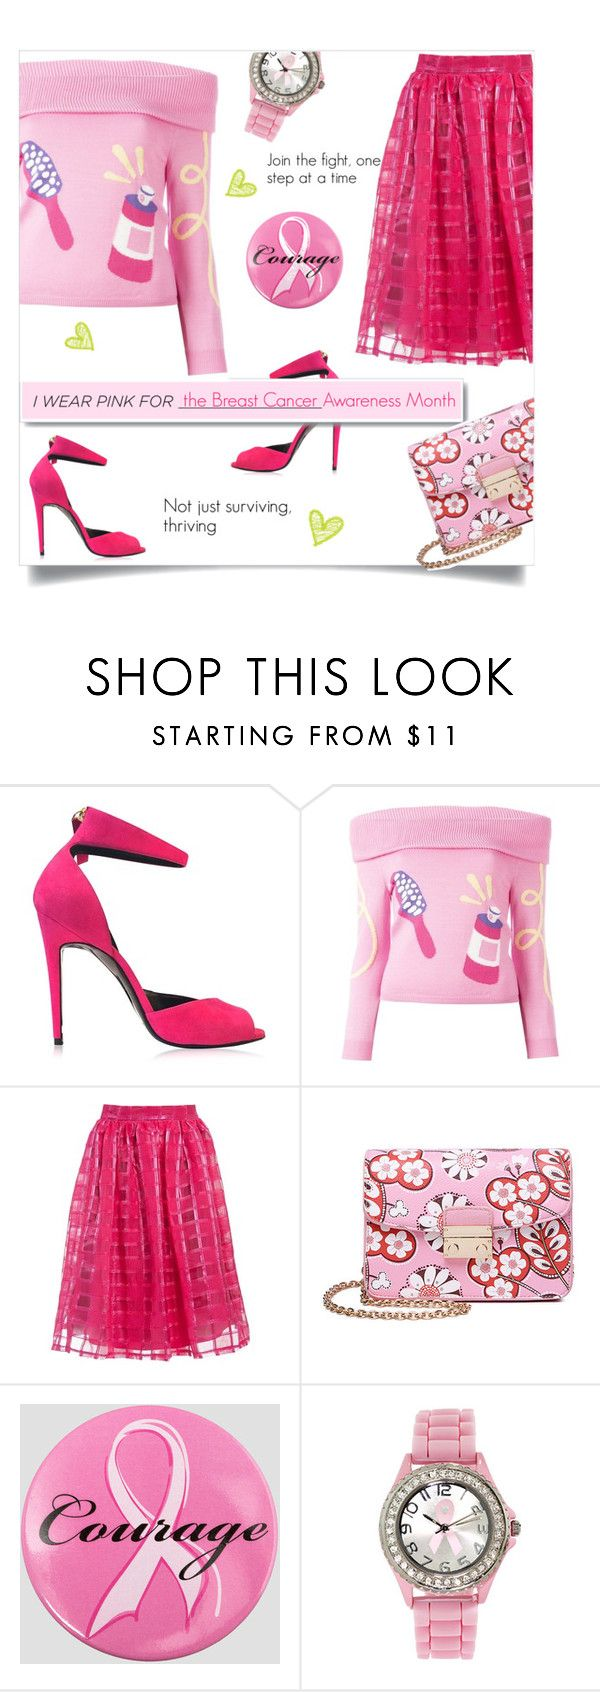 """I pink I can, I pink I will"" by linkfari ❤ liked on Polyvore featuring Pierre Hardy, White Label, Jeremy Scott, Sans Souci, Ashley Stewart and IWearPinkFor"